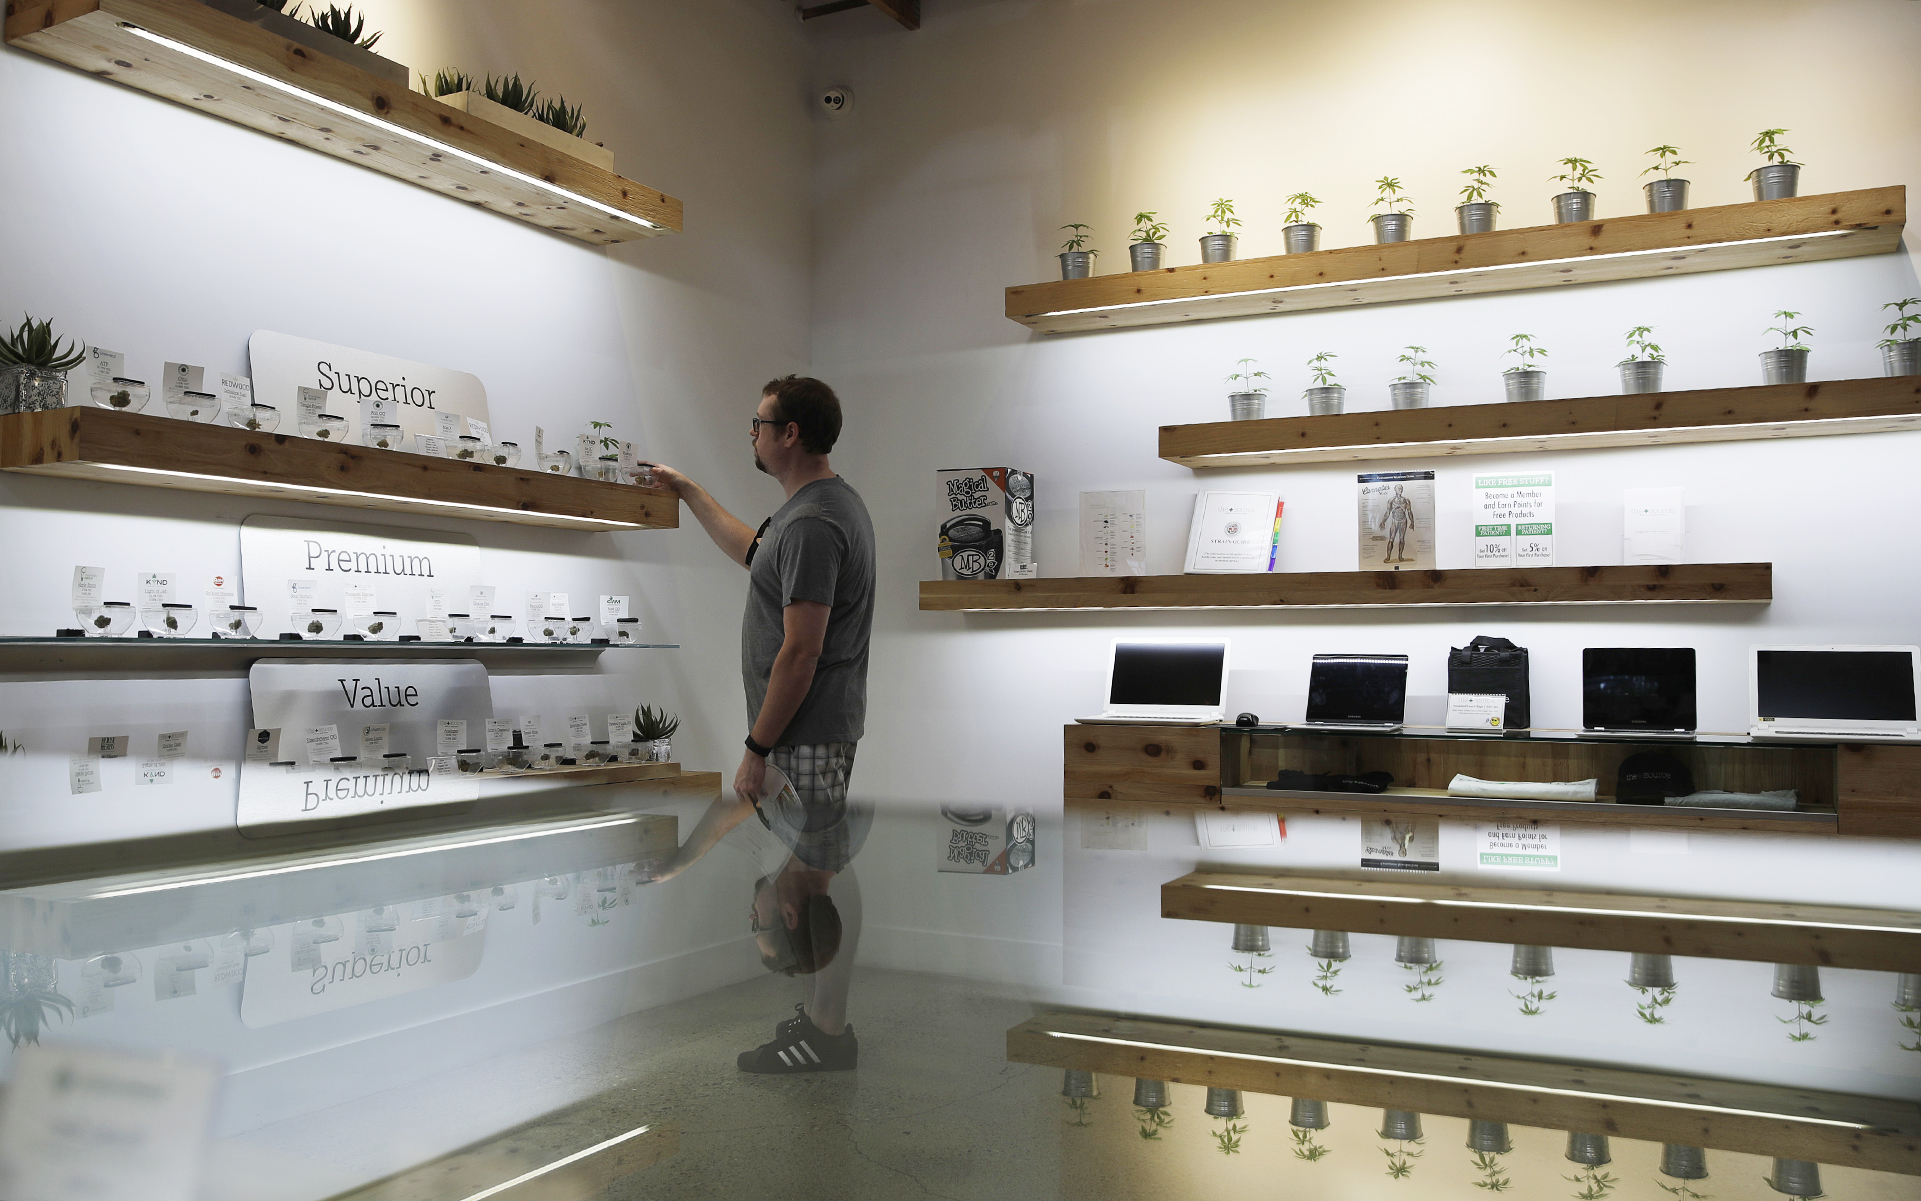 The Source dispensary in Las Vegas competes with a robust black market. (AP Photo/John Locher, File)